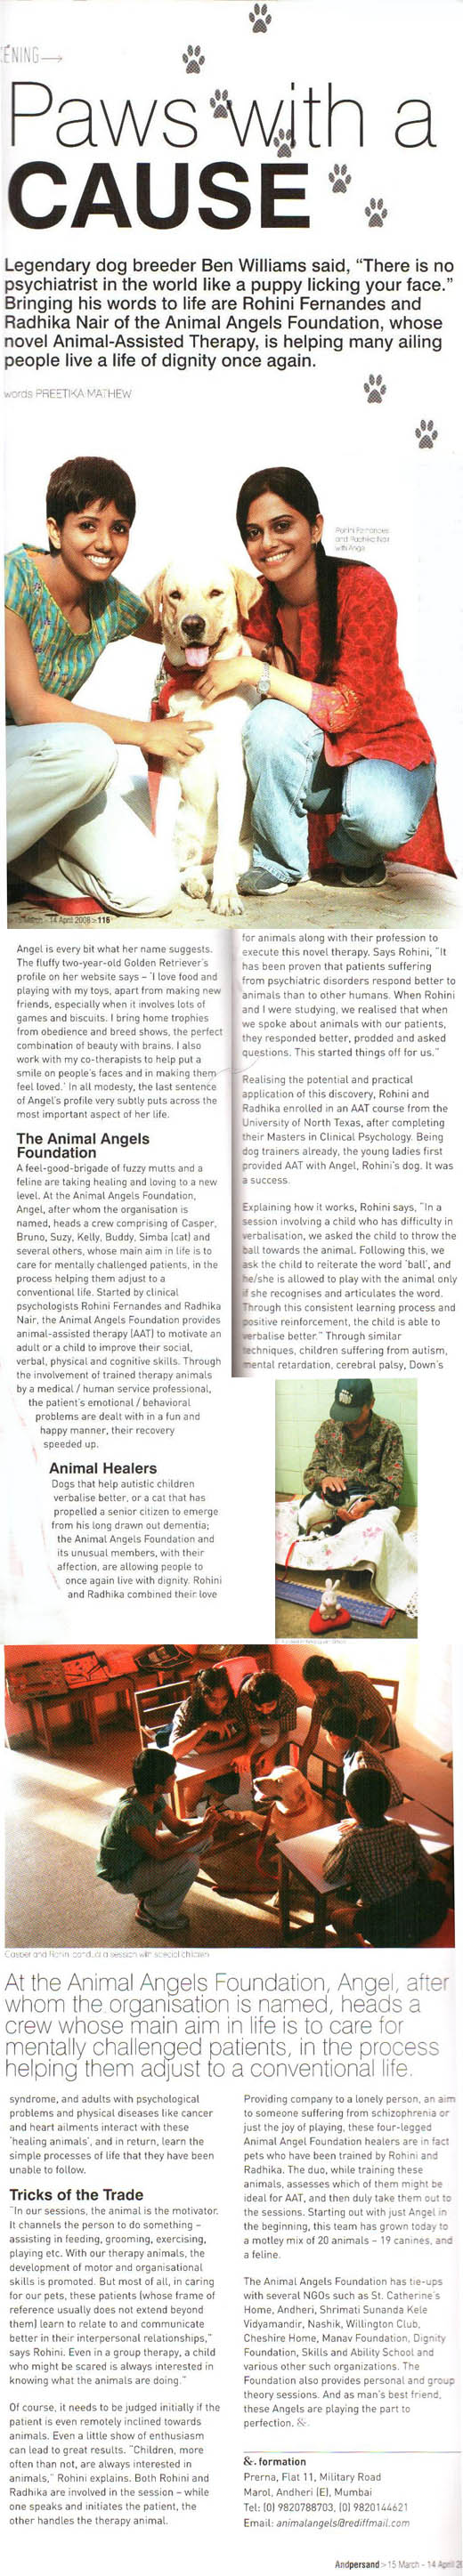 Article on Animal Angels Foundation in &persand magazine; Paws with a cause - Preetika Mathew on March 15, 2008